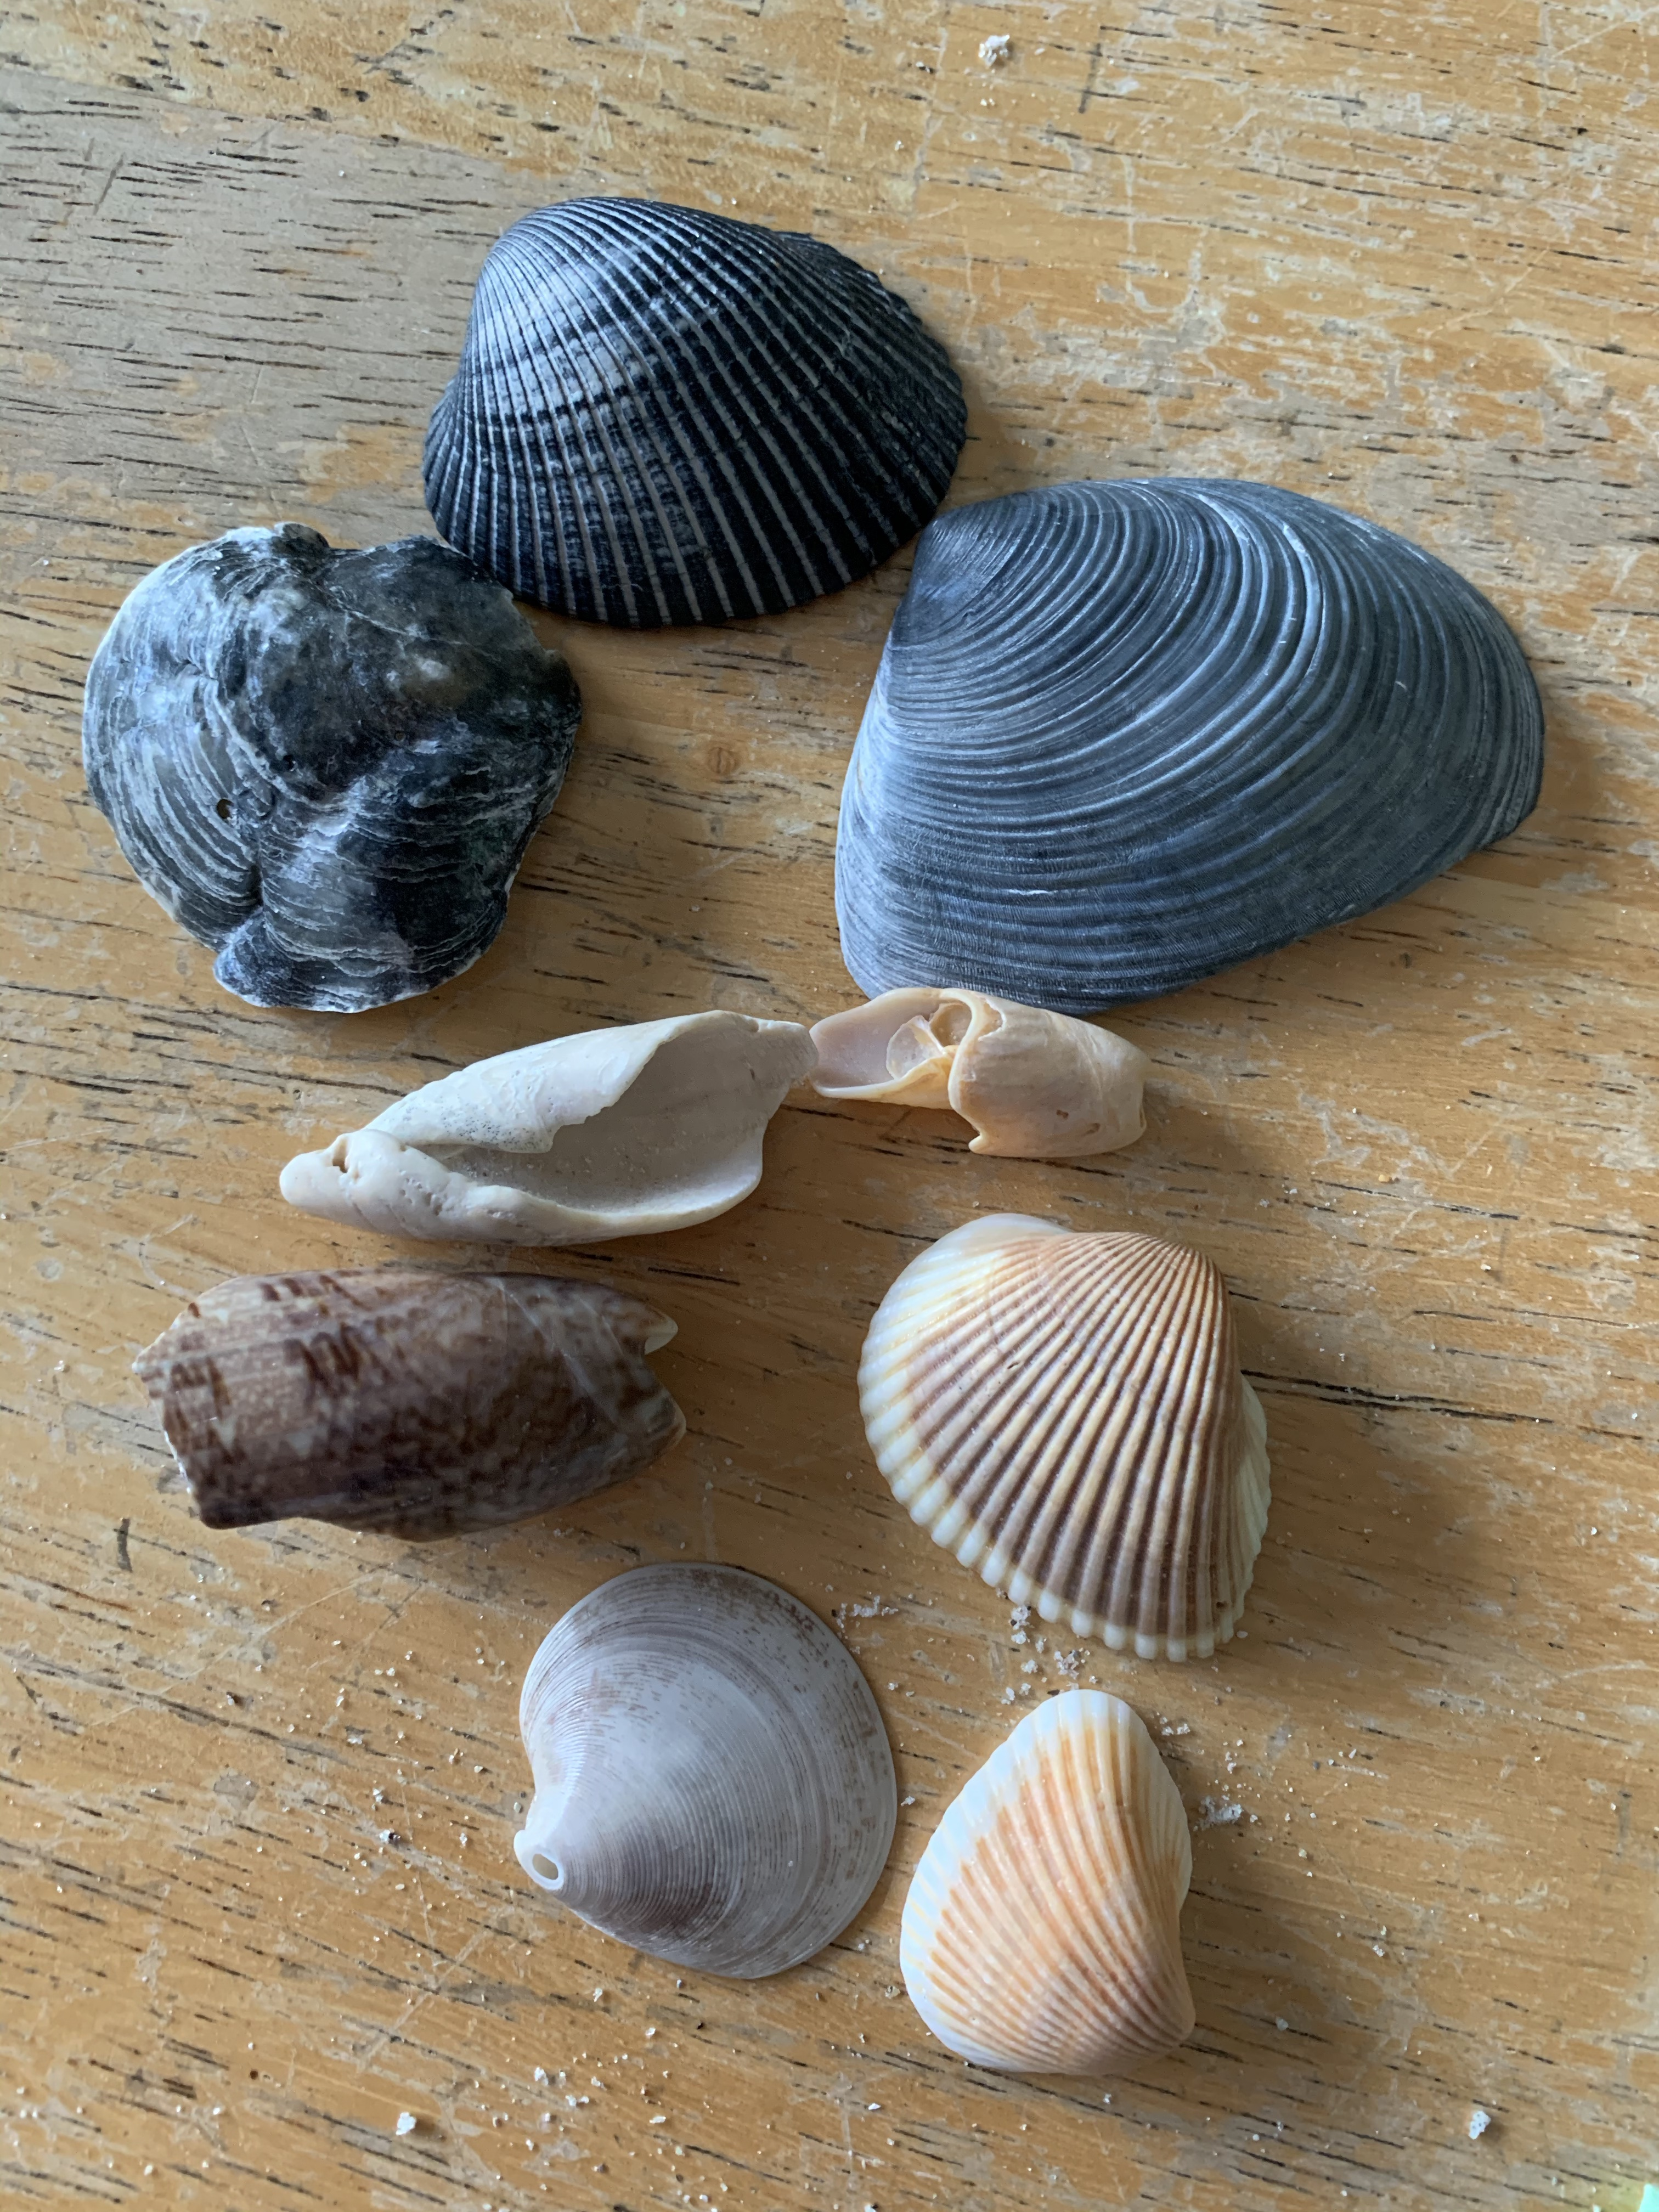 Looking For Shells That Are Out Of The Ordinary